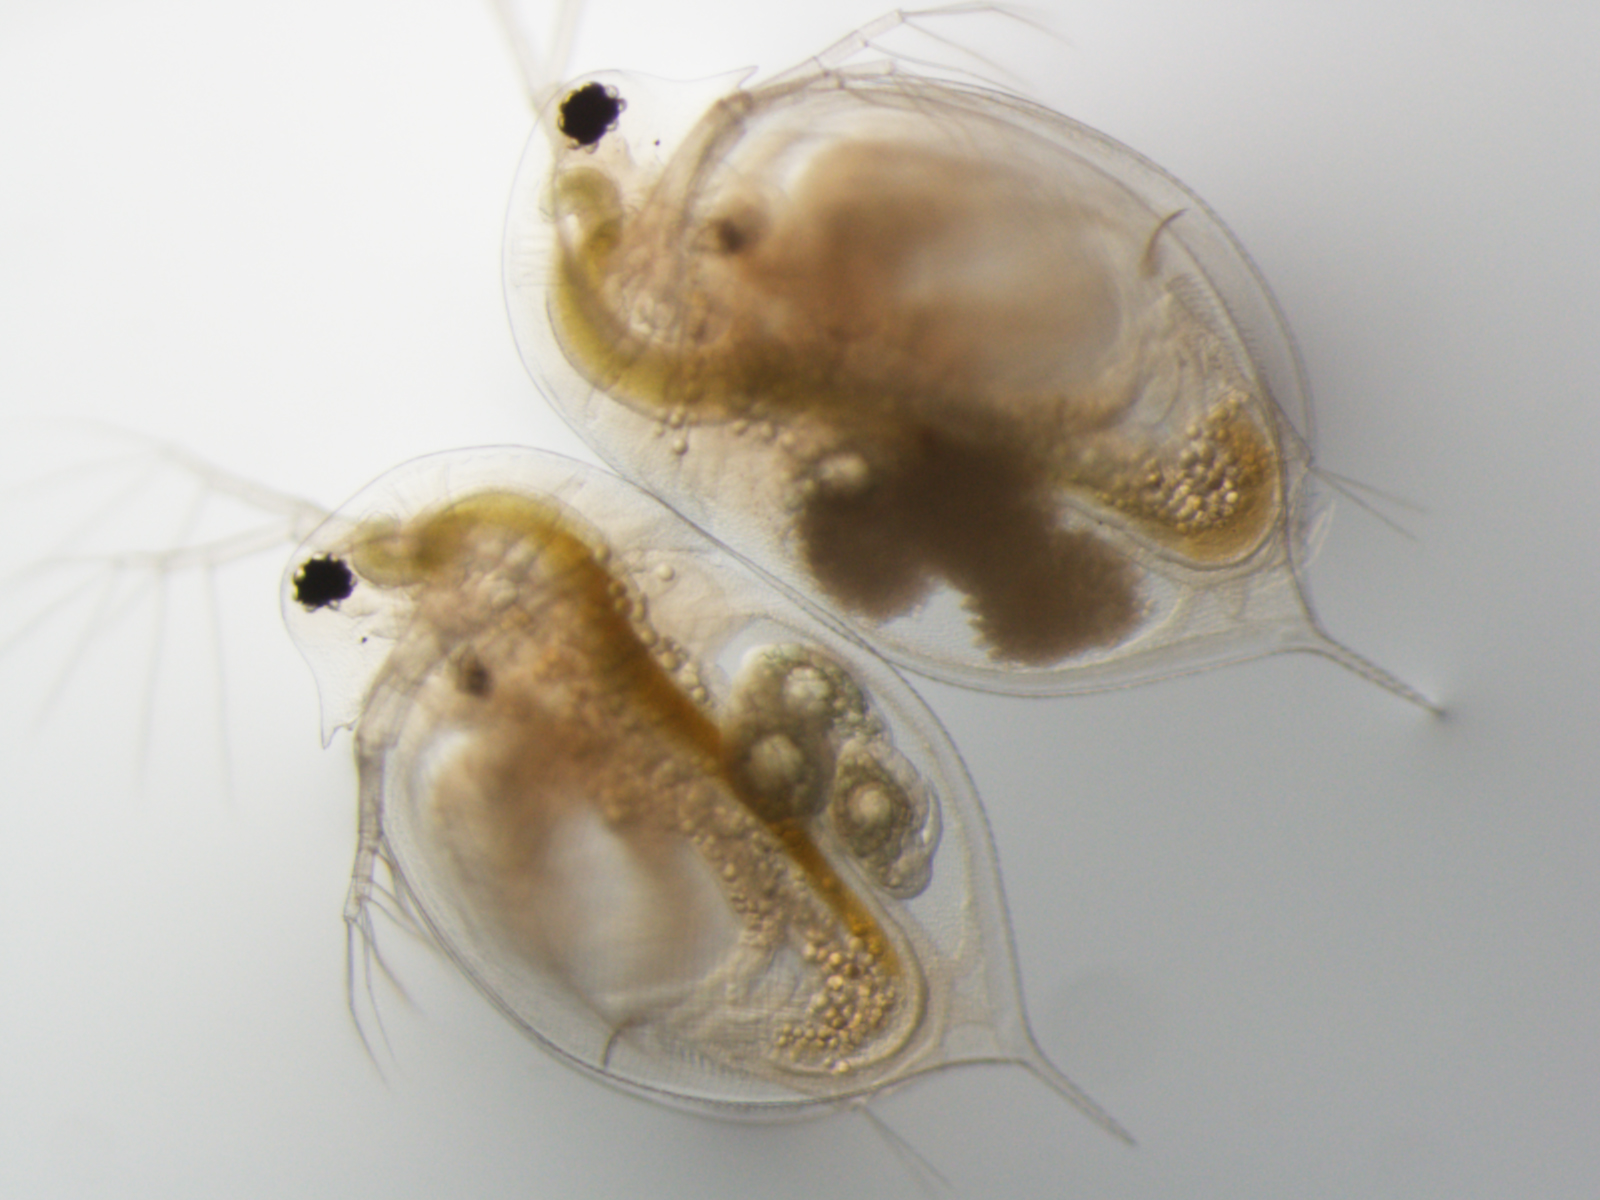 daphnia research papers View daphnia magna research papers on academiaedu for free.